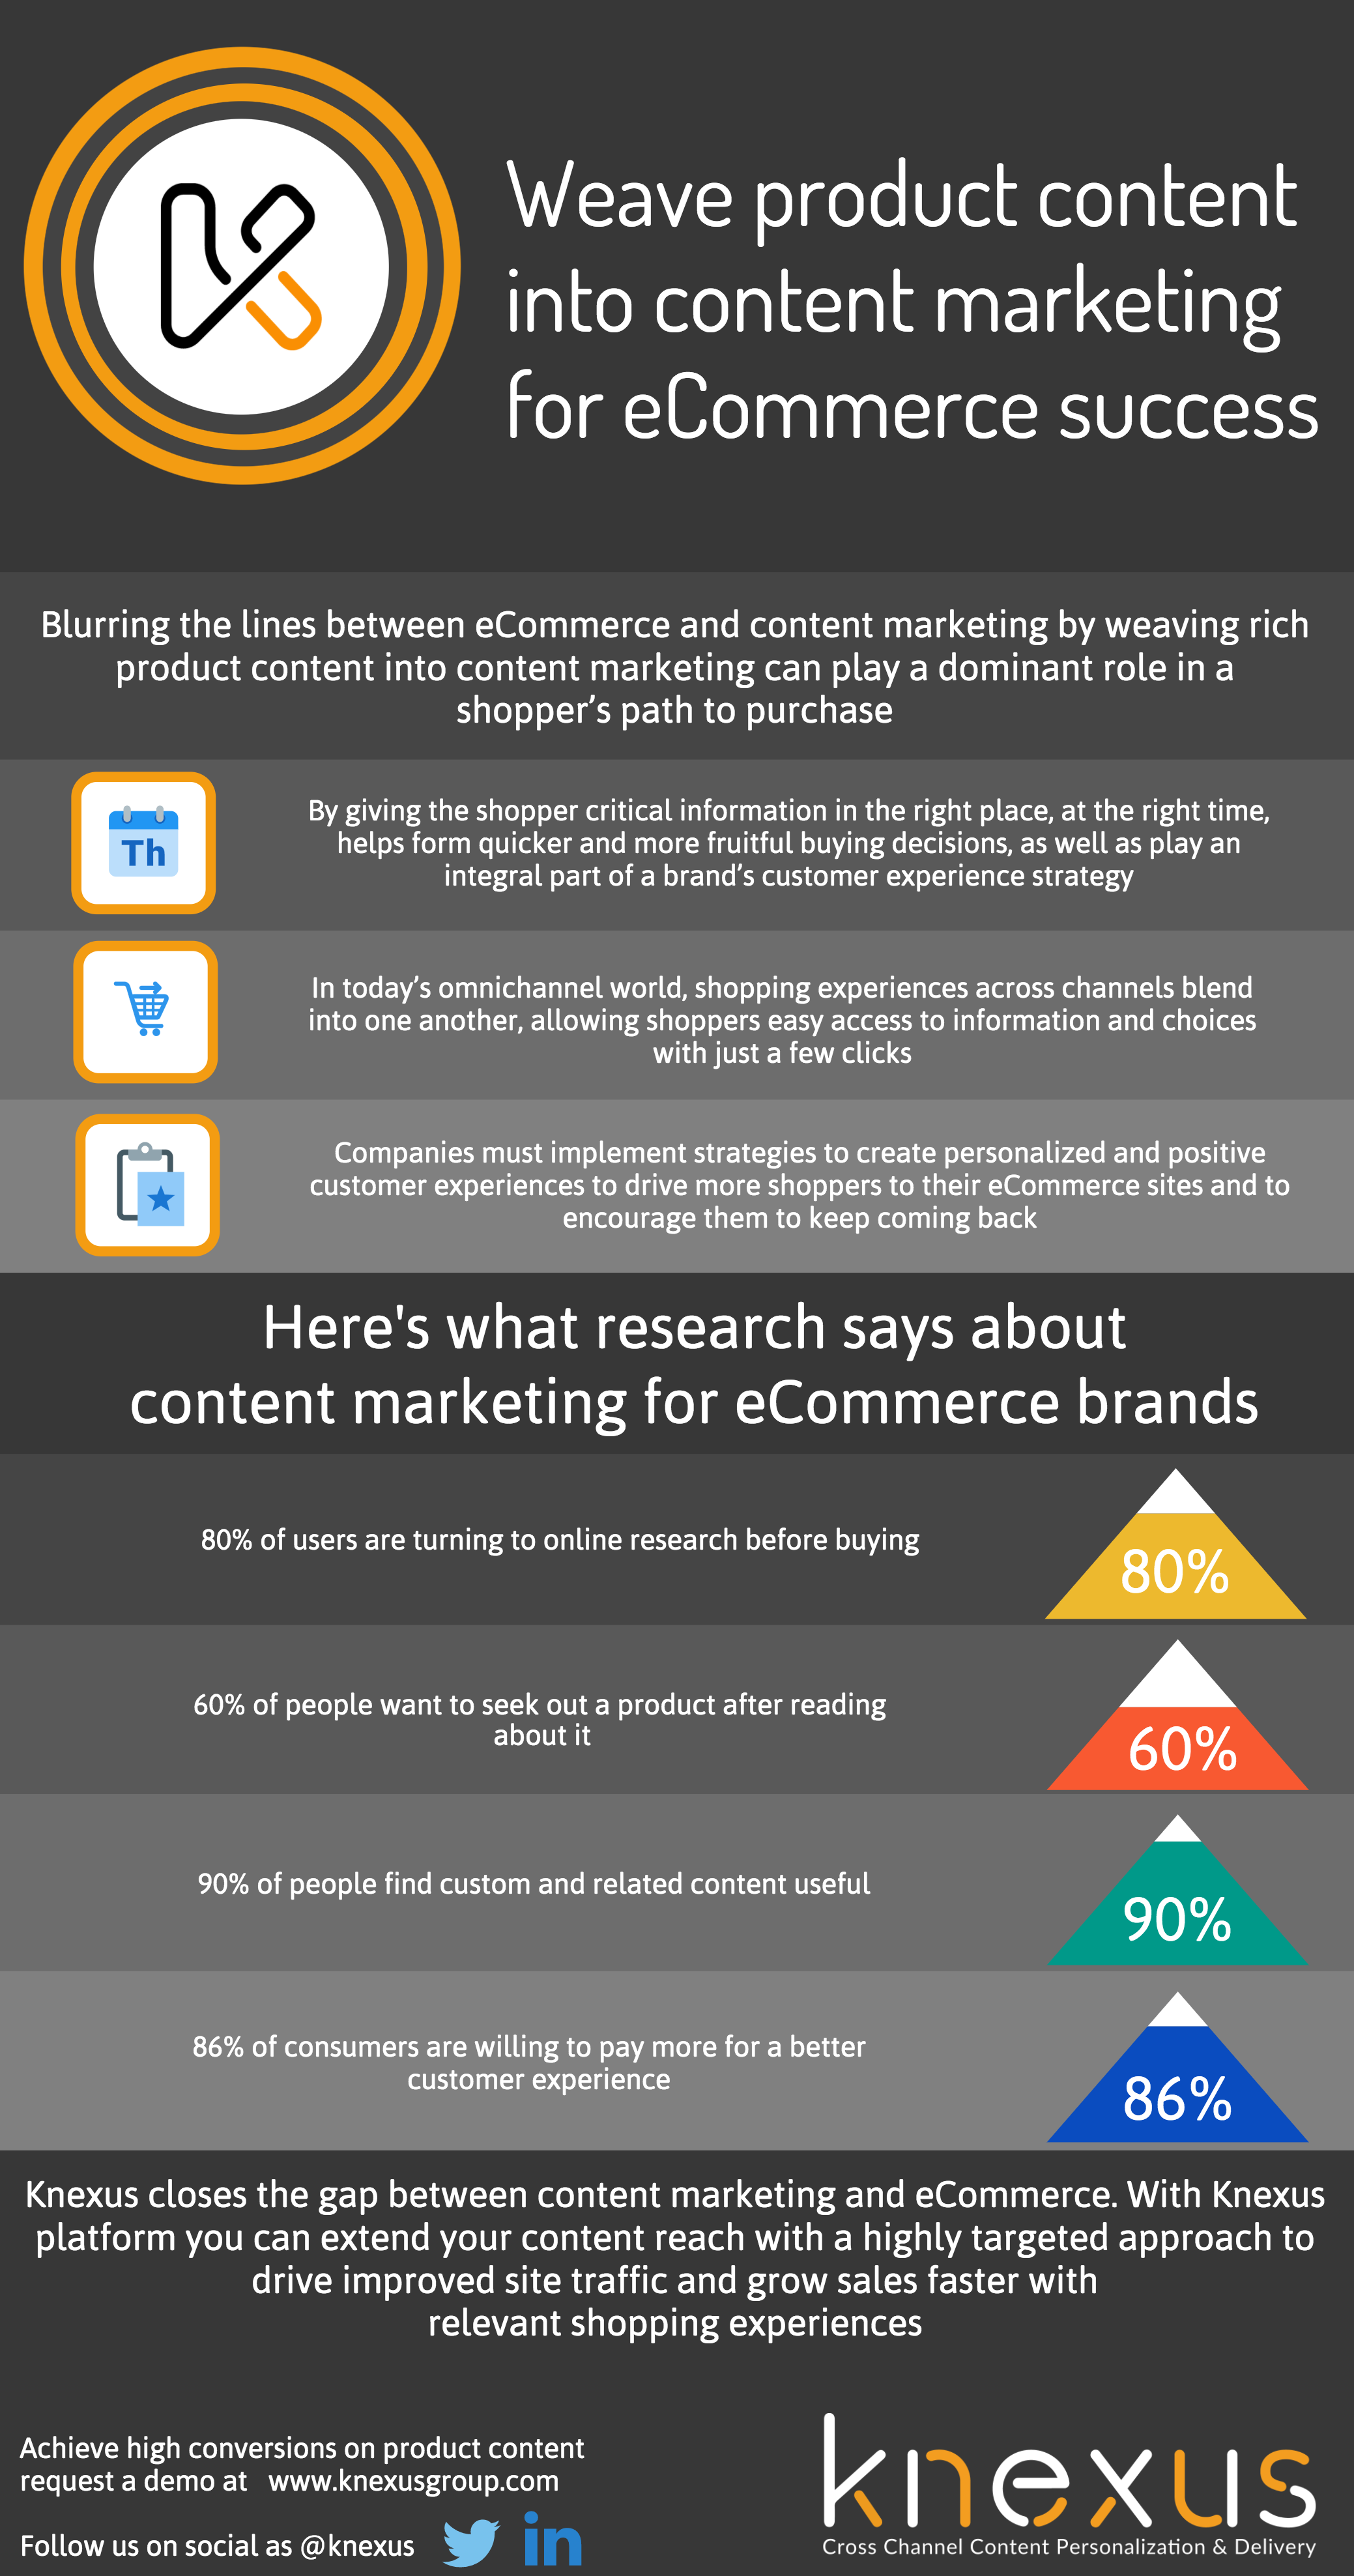 use product content in content marketing for ecommerce success